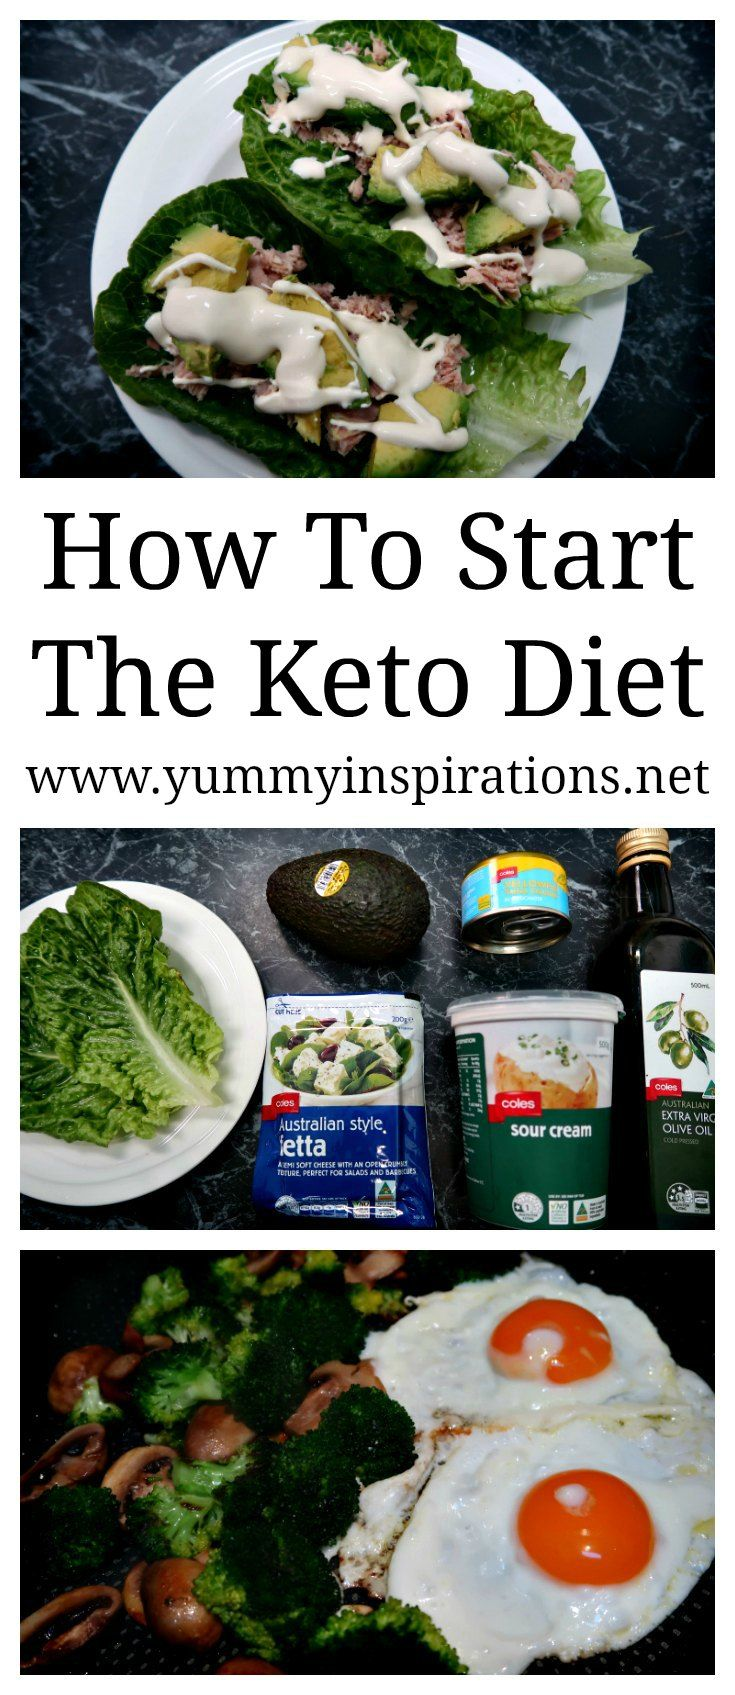 Keto Diet Plan: How To Start The Keto Diet – Tips to help you get started with losing weight on …